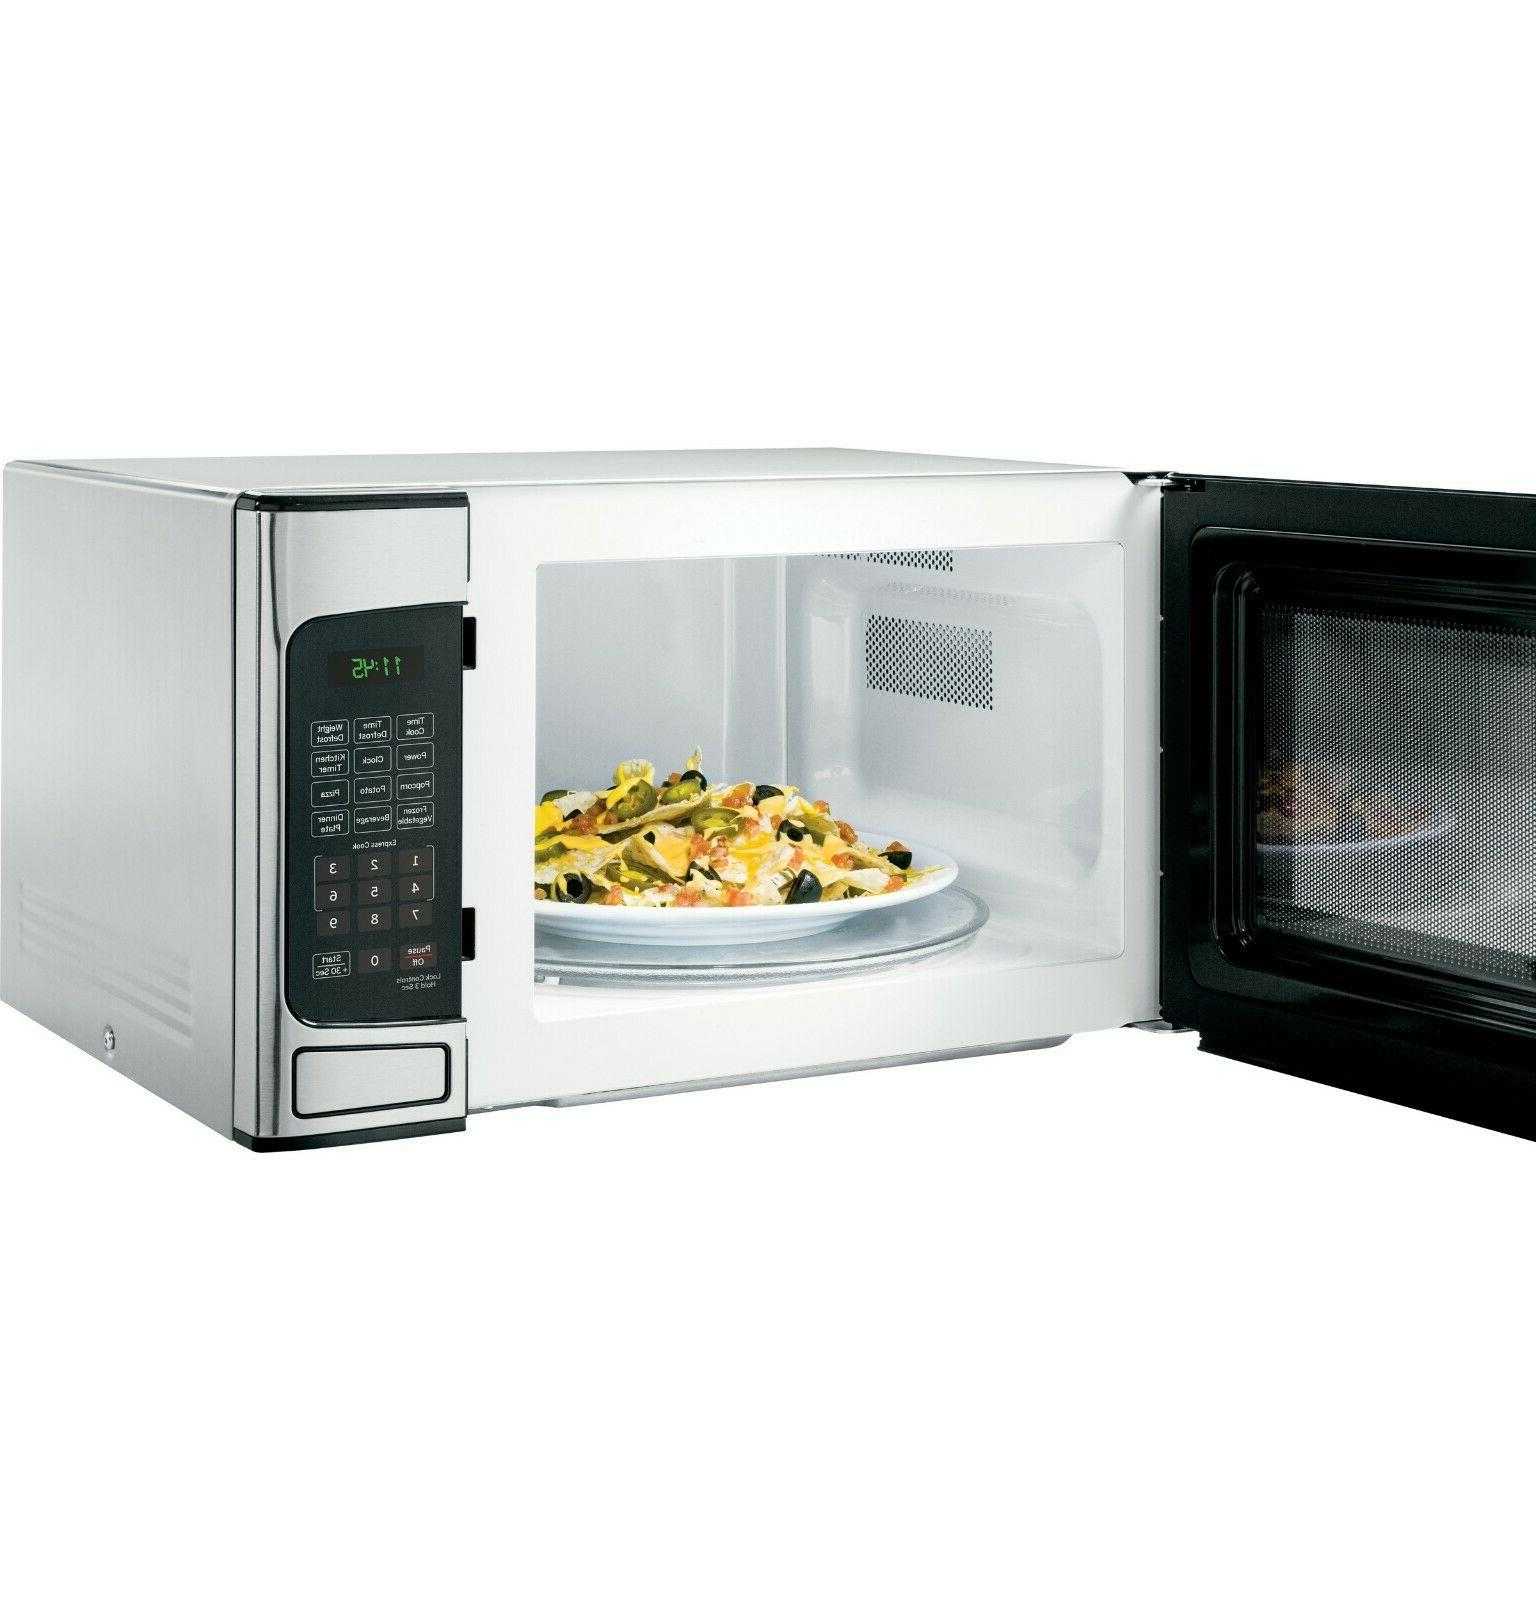 General Electric 1.1 Cu. Ft. Countertop Microwave Oven 1-tou